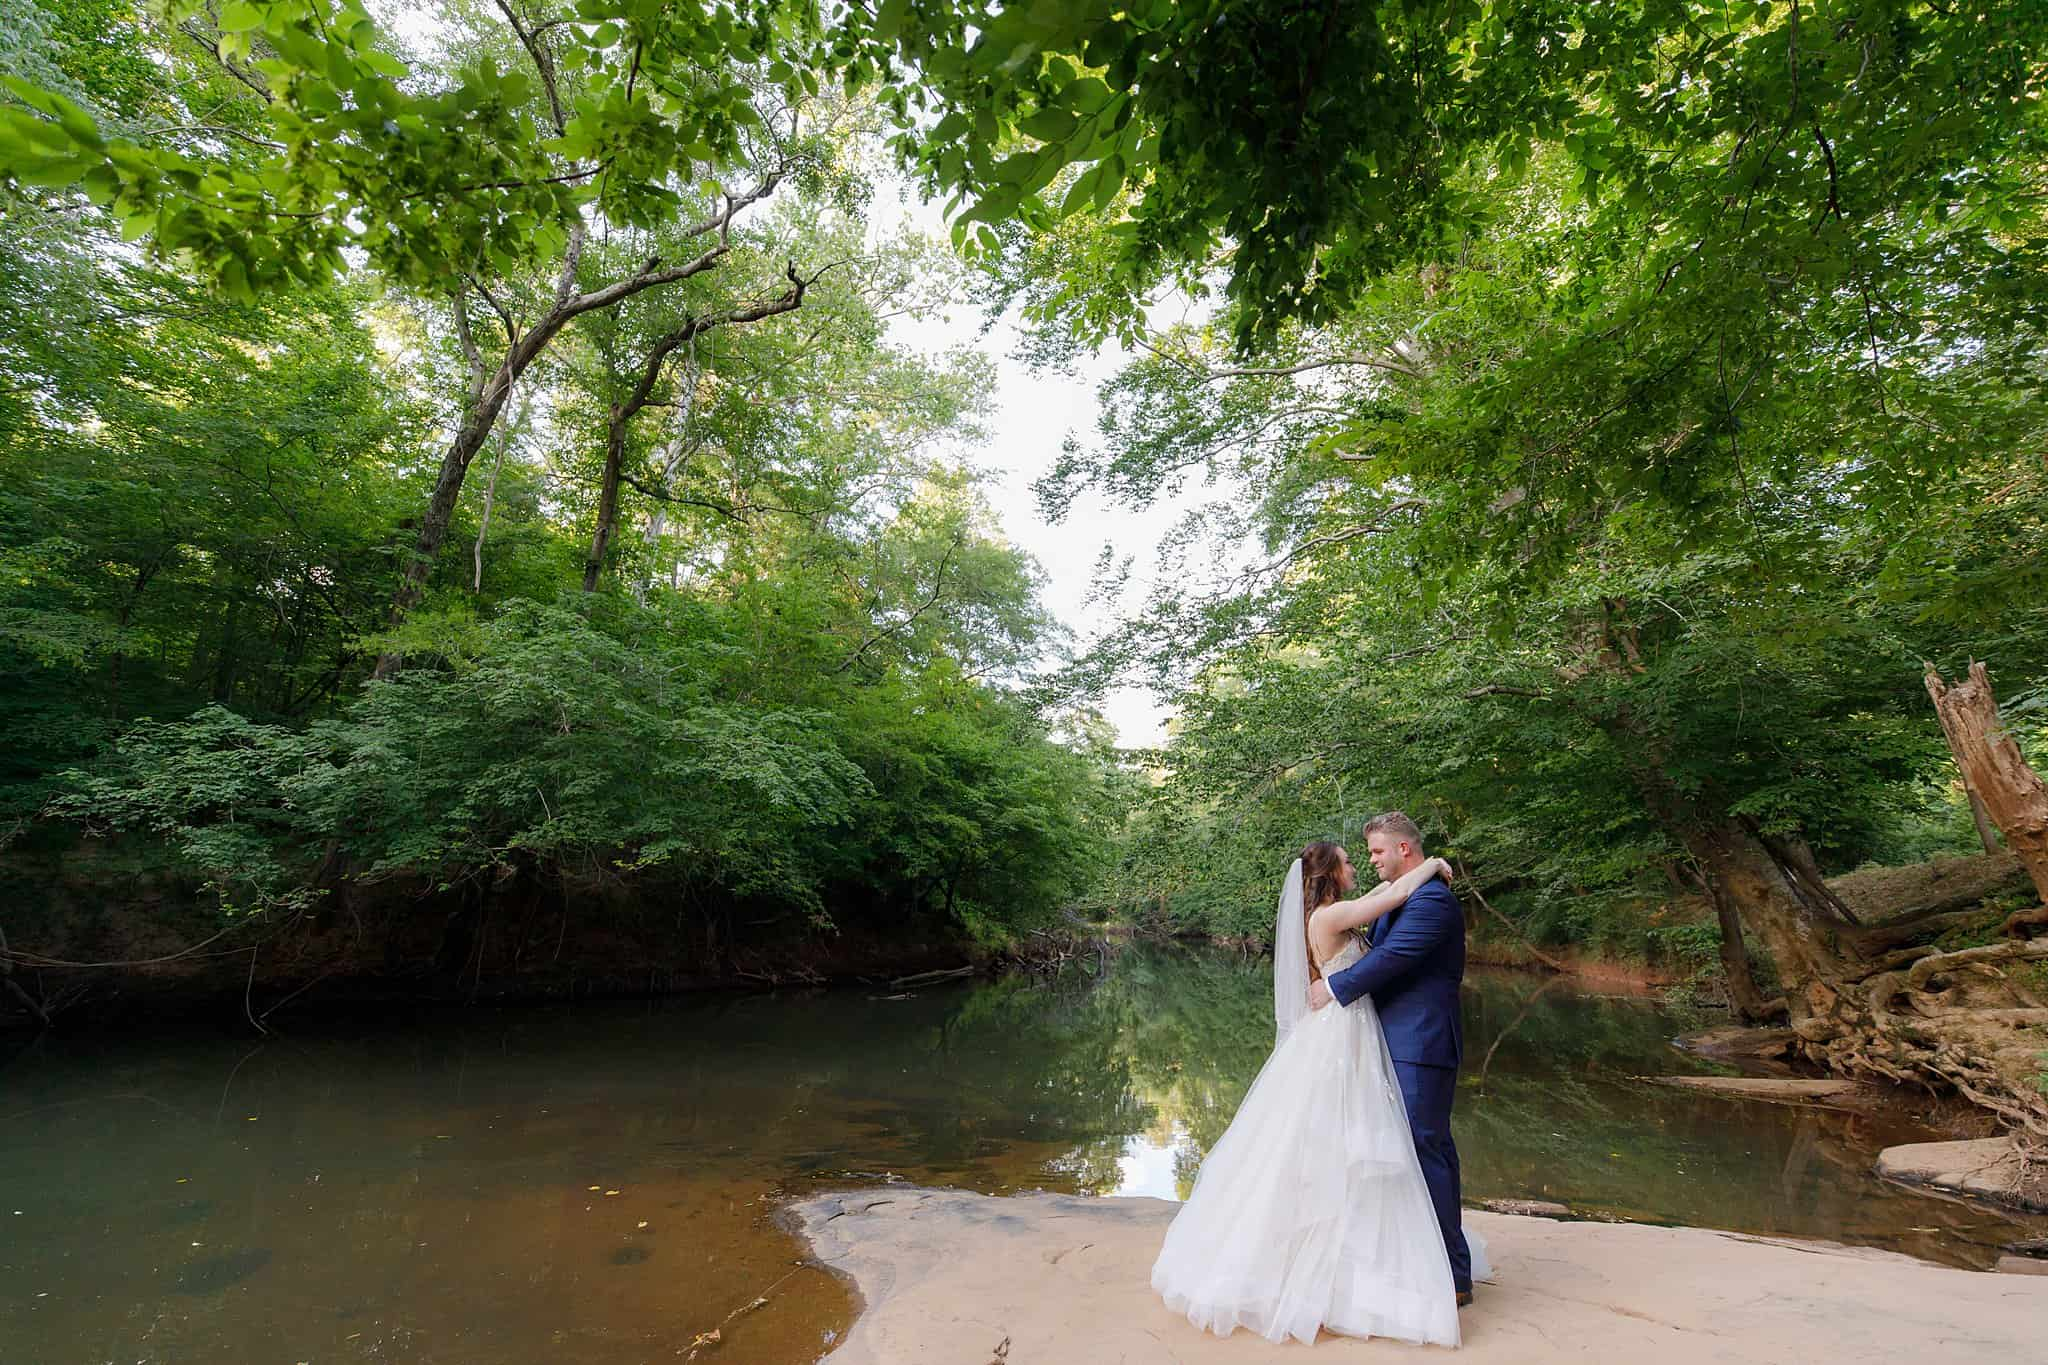 Bride and Groom on river's edge